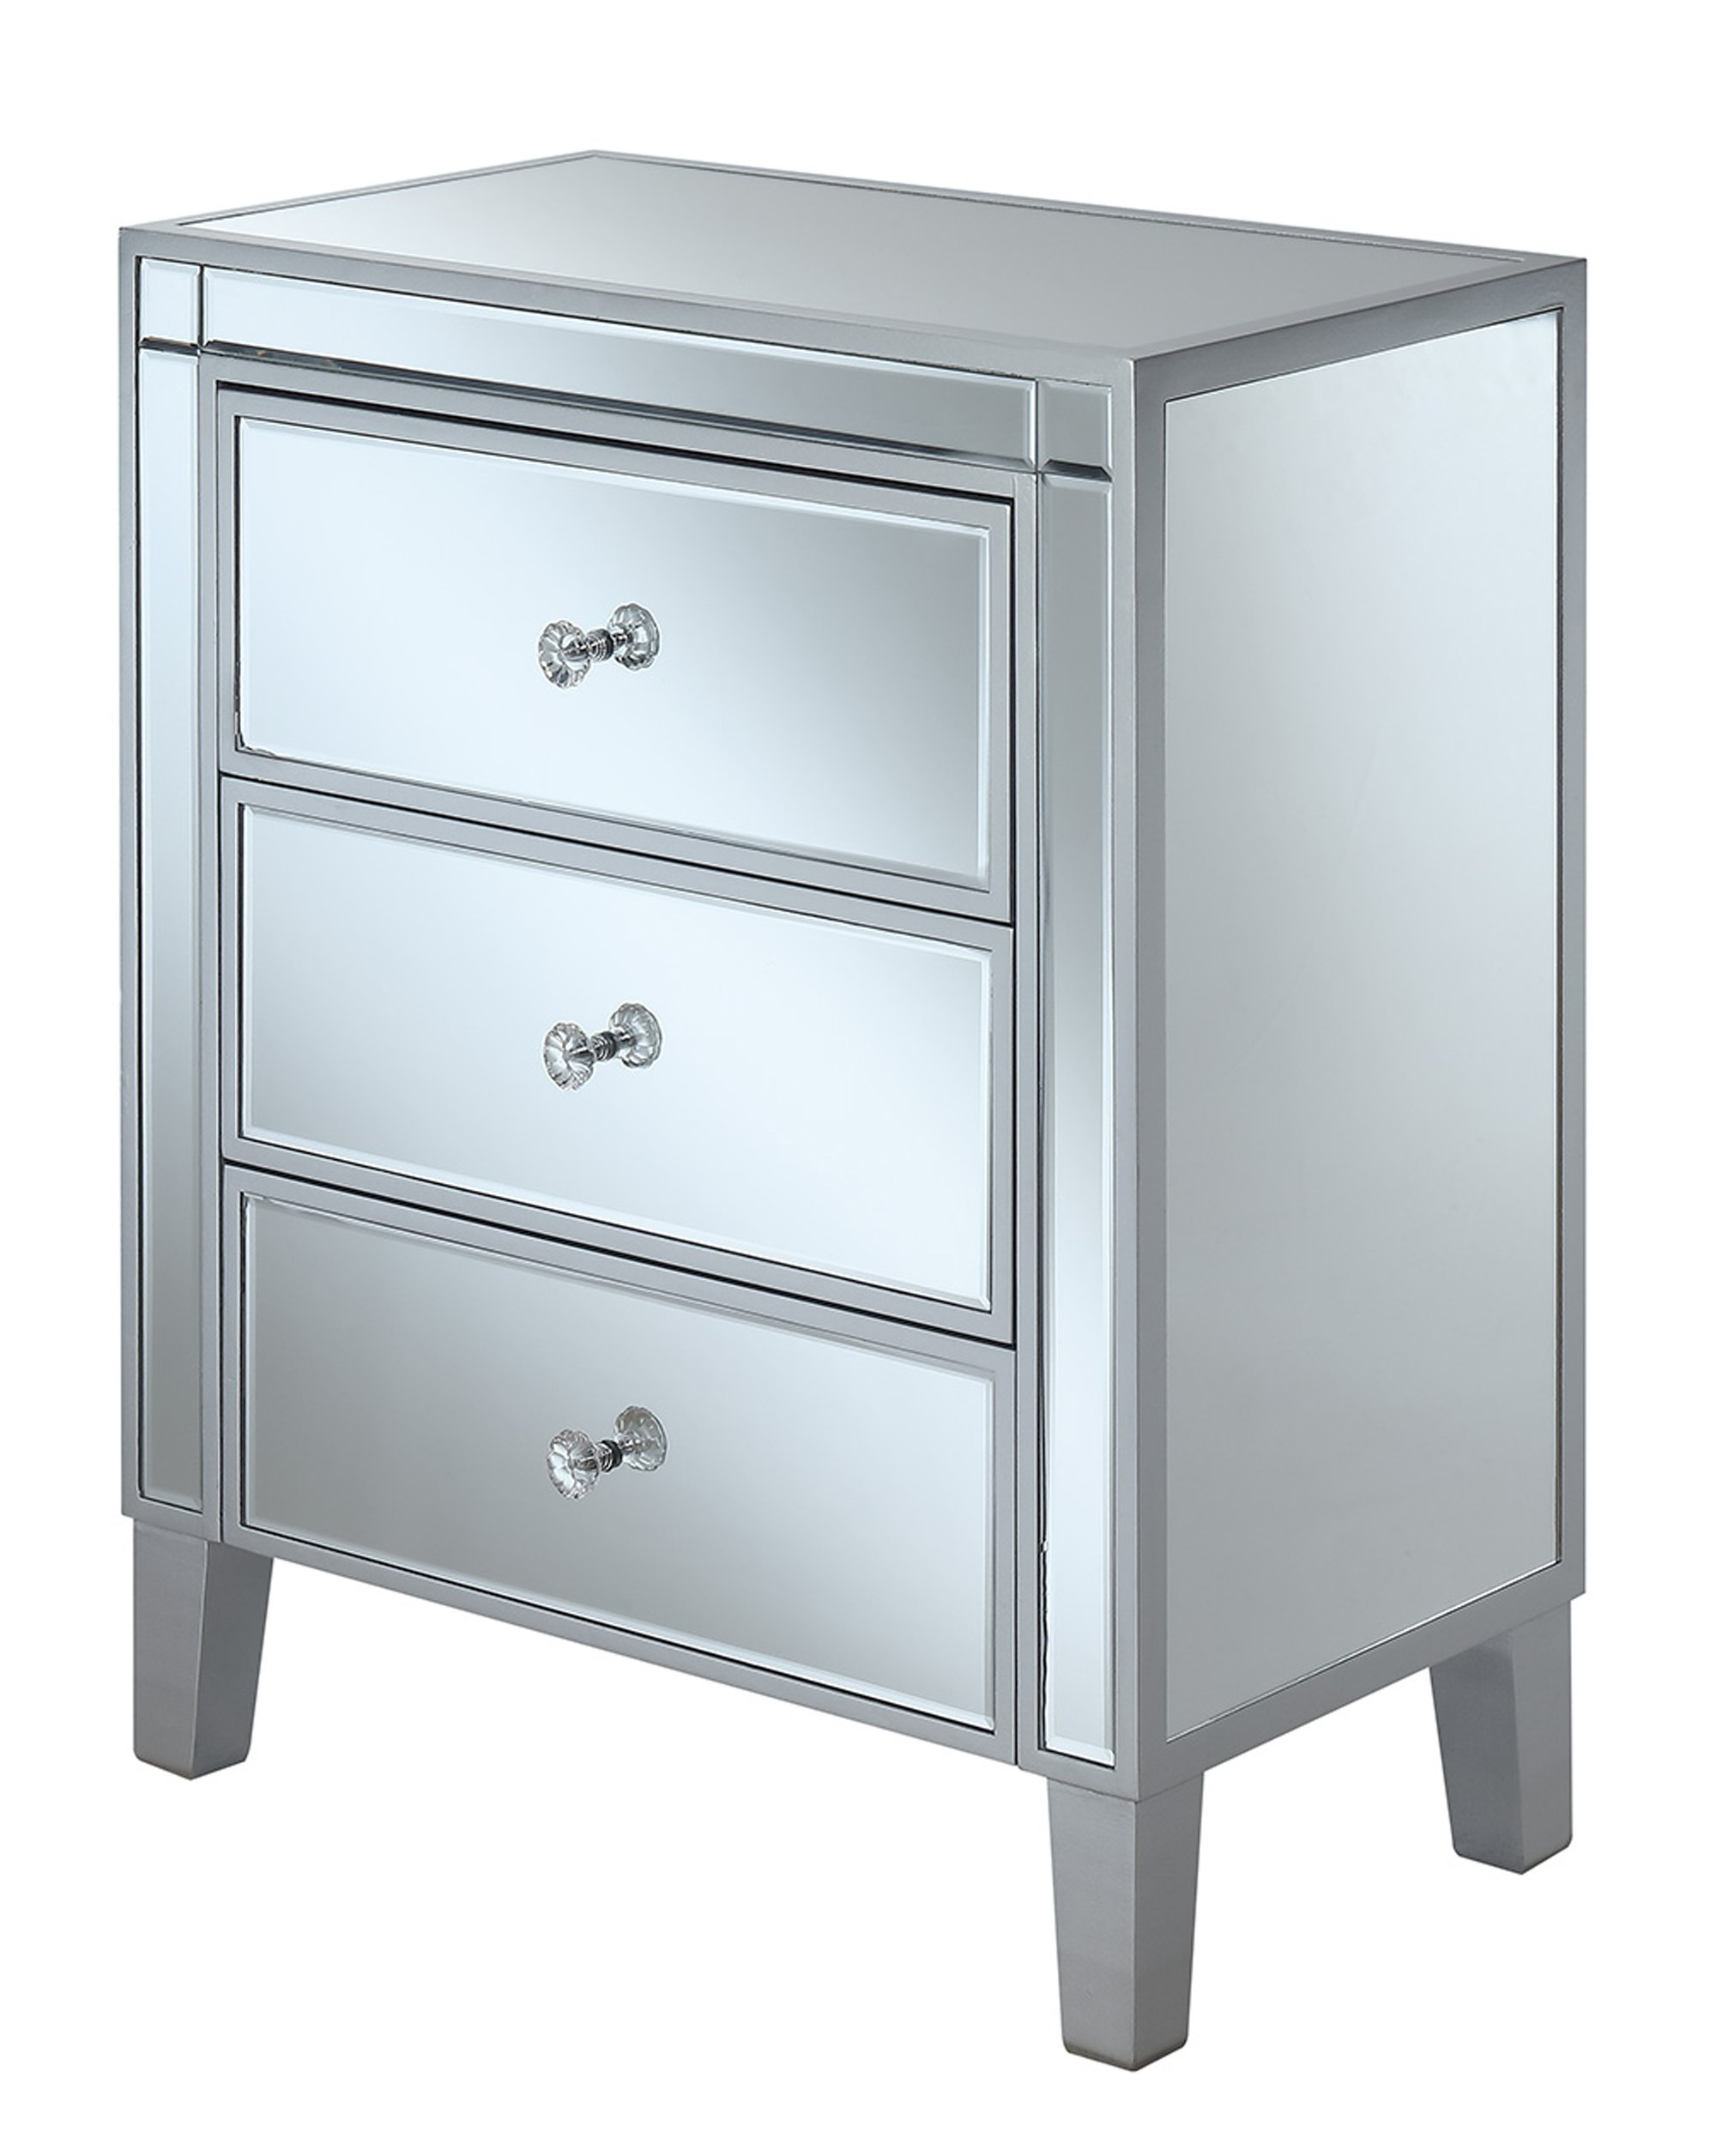 Convenience Concepts Gold Coast 3-Drawer End Table, Silver/Mirror by Convenience Concepts